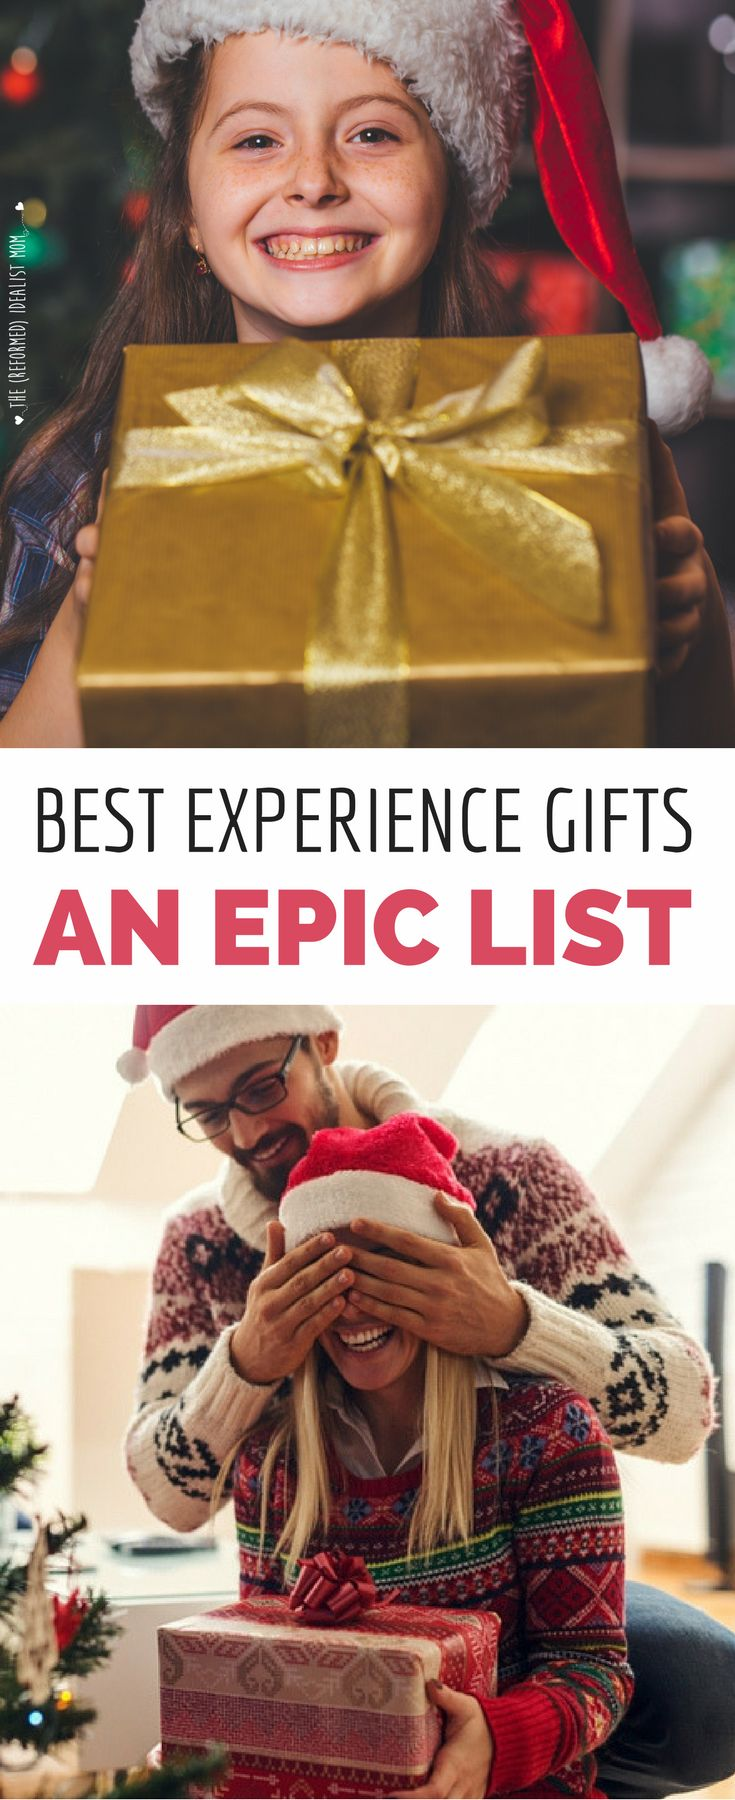 These presents will make you everyone's favorite person! This is a MASSIVE list of the best experience gift ideas for everyone on your Christmas list, from gift ideas for kids to gifts for him - and lots more. Great ideas for birthdays and anniversary gifts, too!